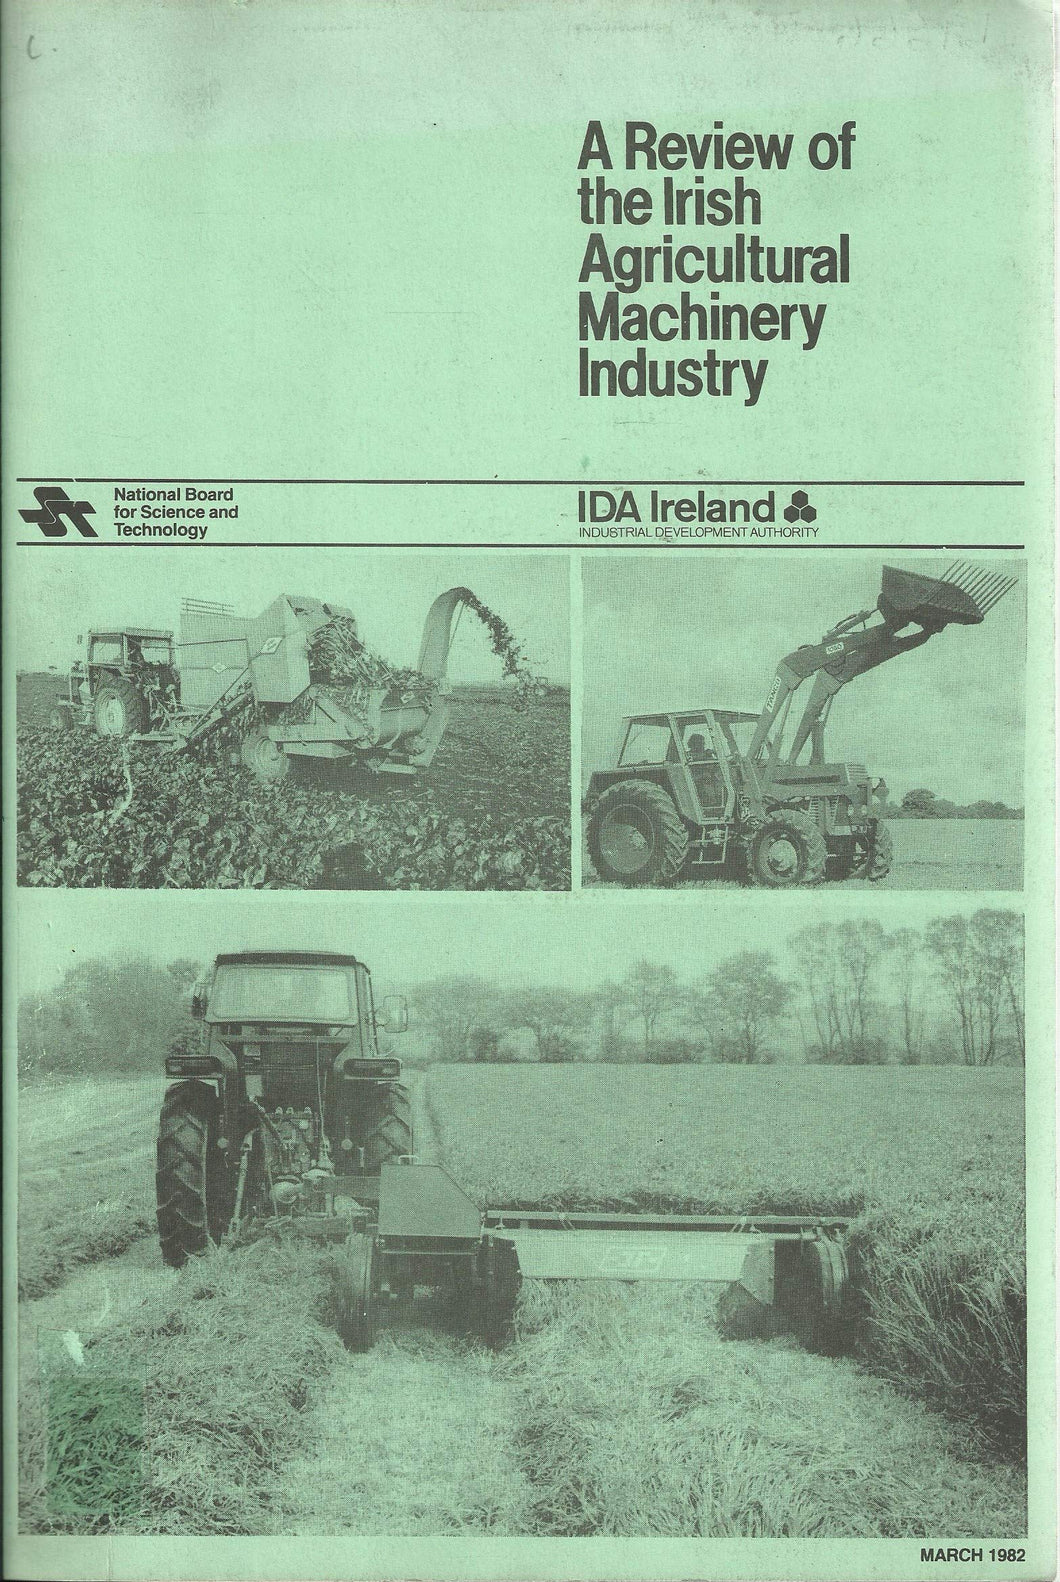 A Review of the Irish agricultural machinery industry